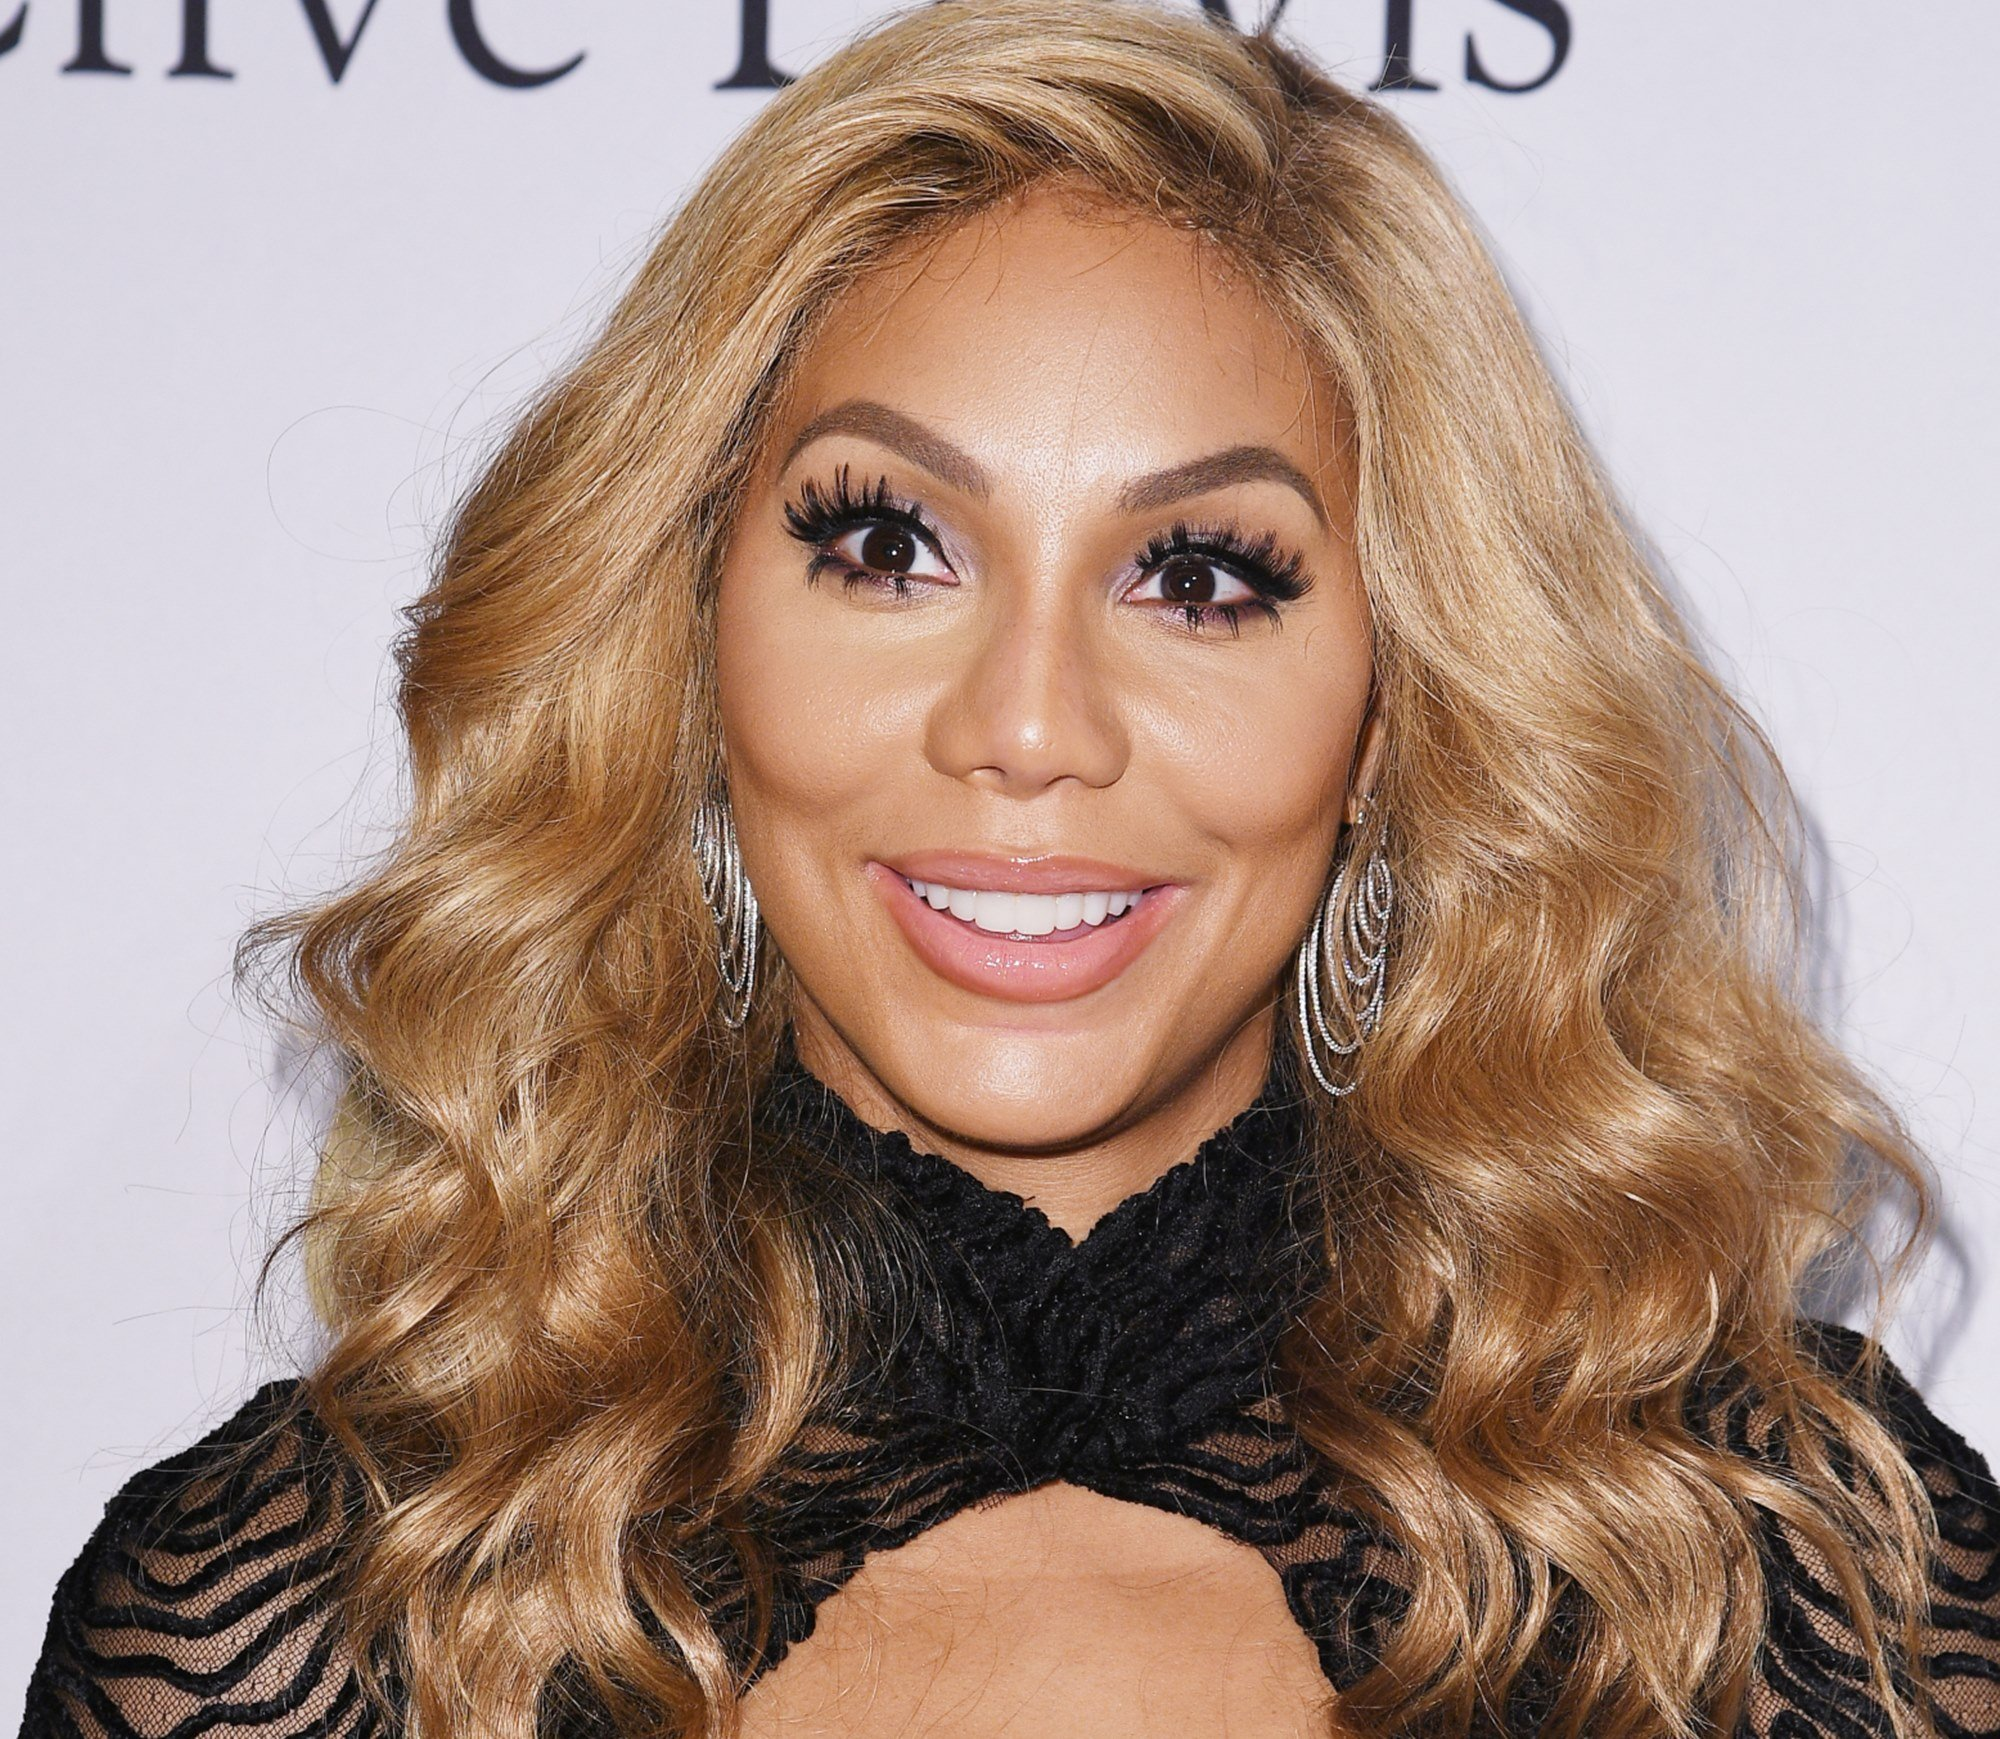 tamar-braxtons-video-has-fans-excited-check-out-her-post-here